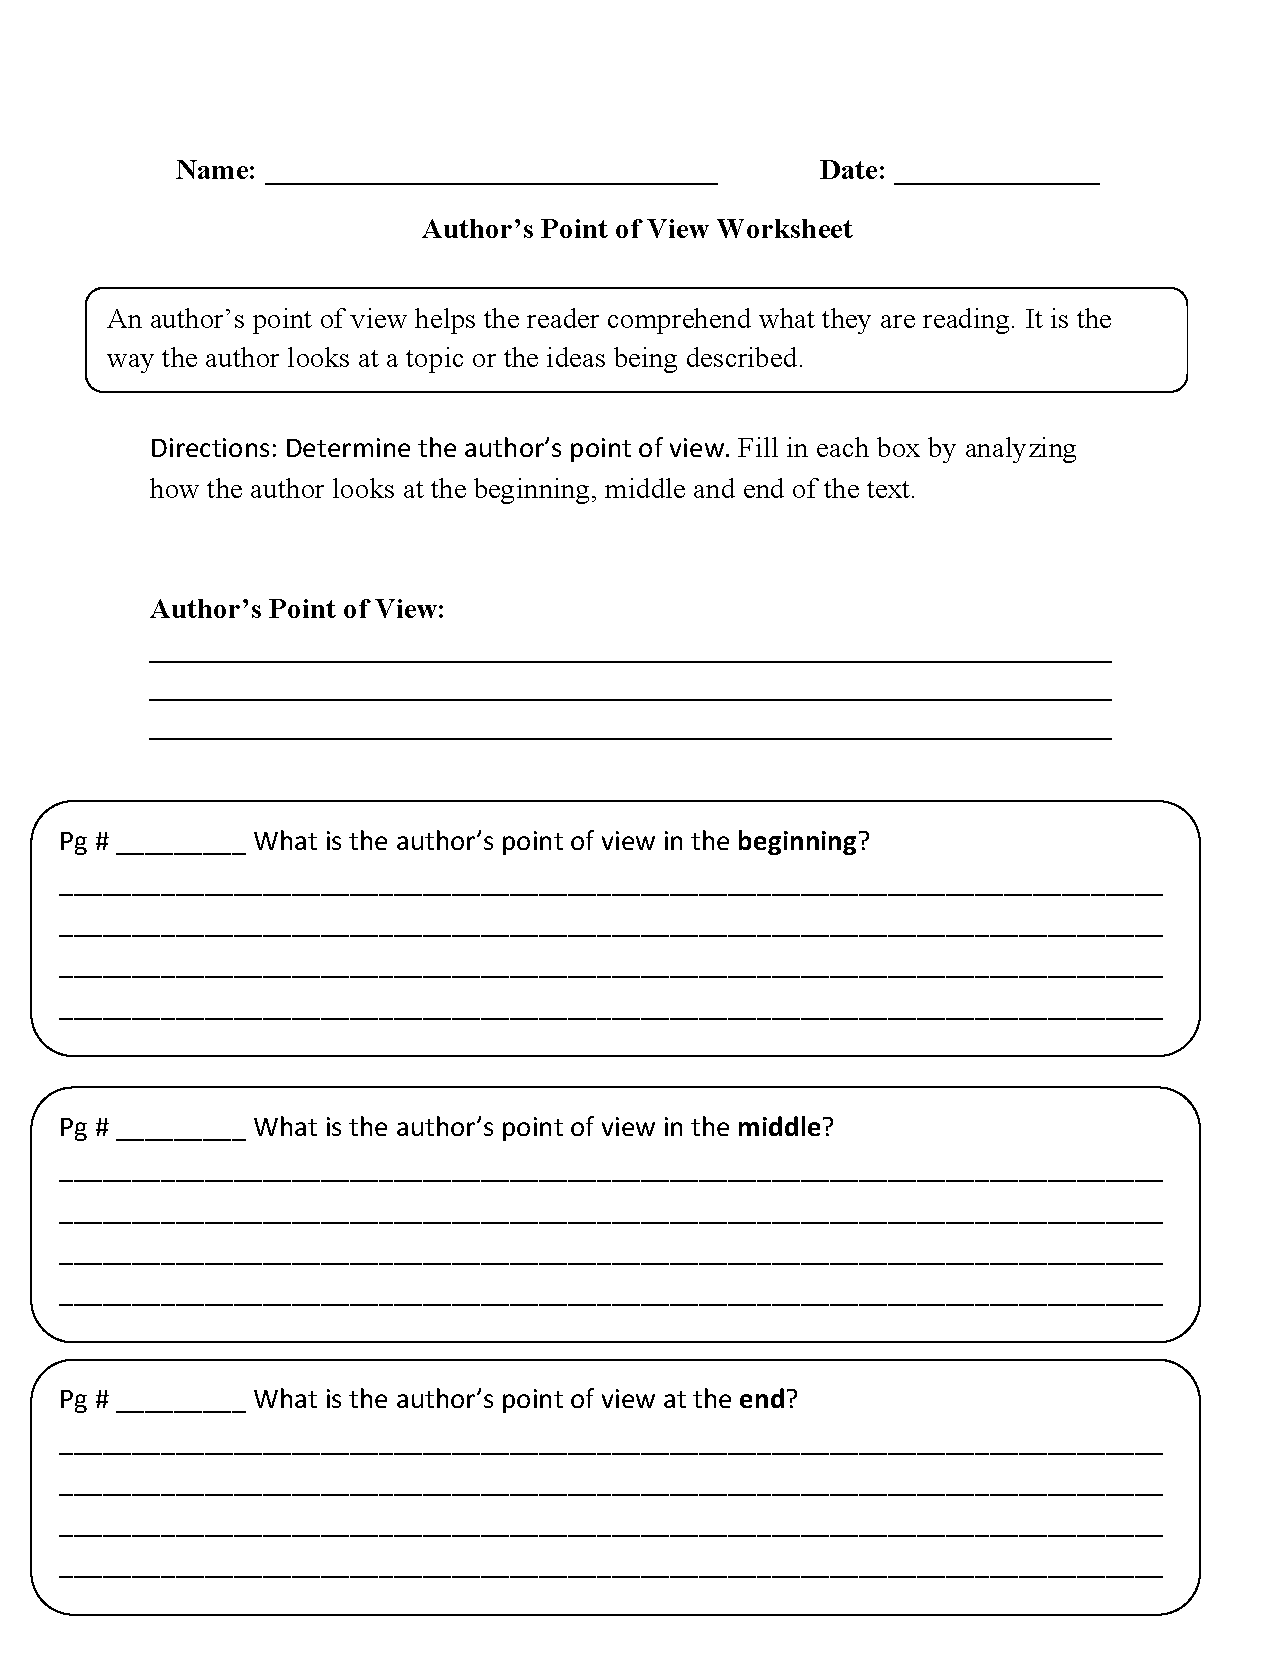 Point of View Worksheets   Author's Point of View Worksheets   Character  trait worksheets [ 1662 x 1275 Pixel ]